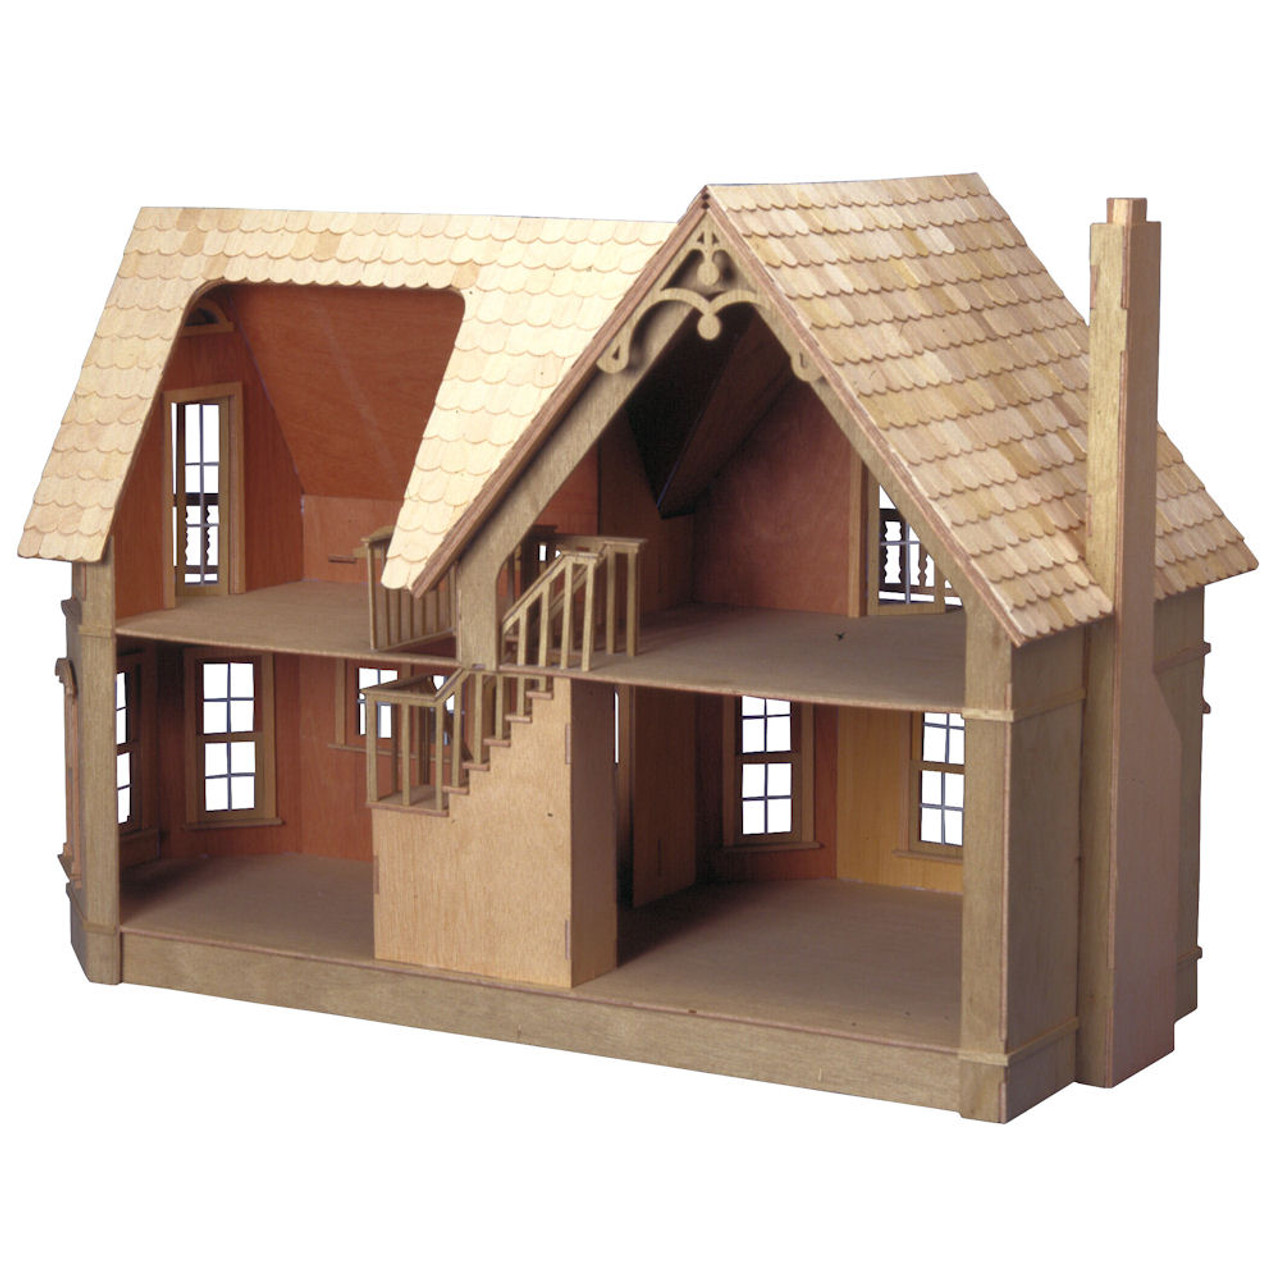 Magnolia Dollhouse Kit